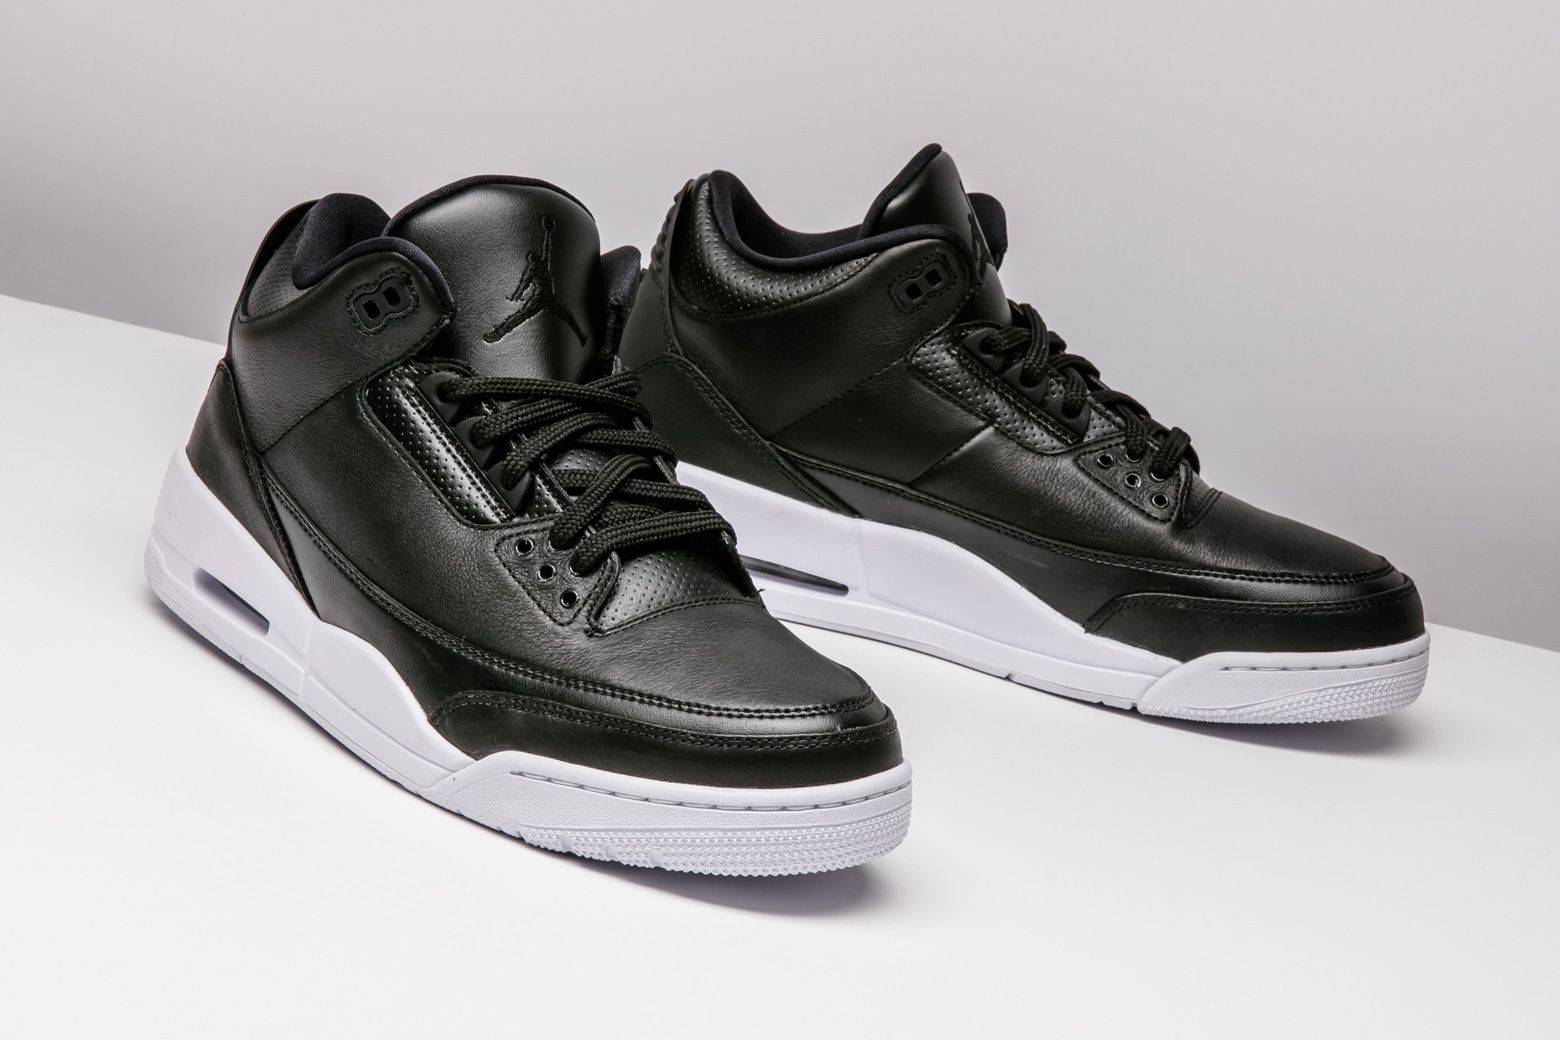 788811248e1d Black White · Tennis · How fitting for the day. Check out the Air Jordan 3